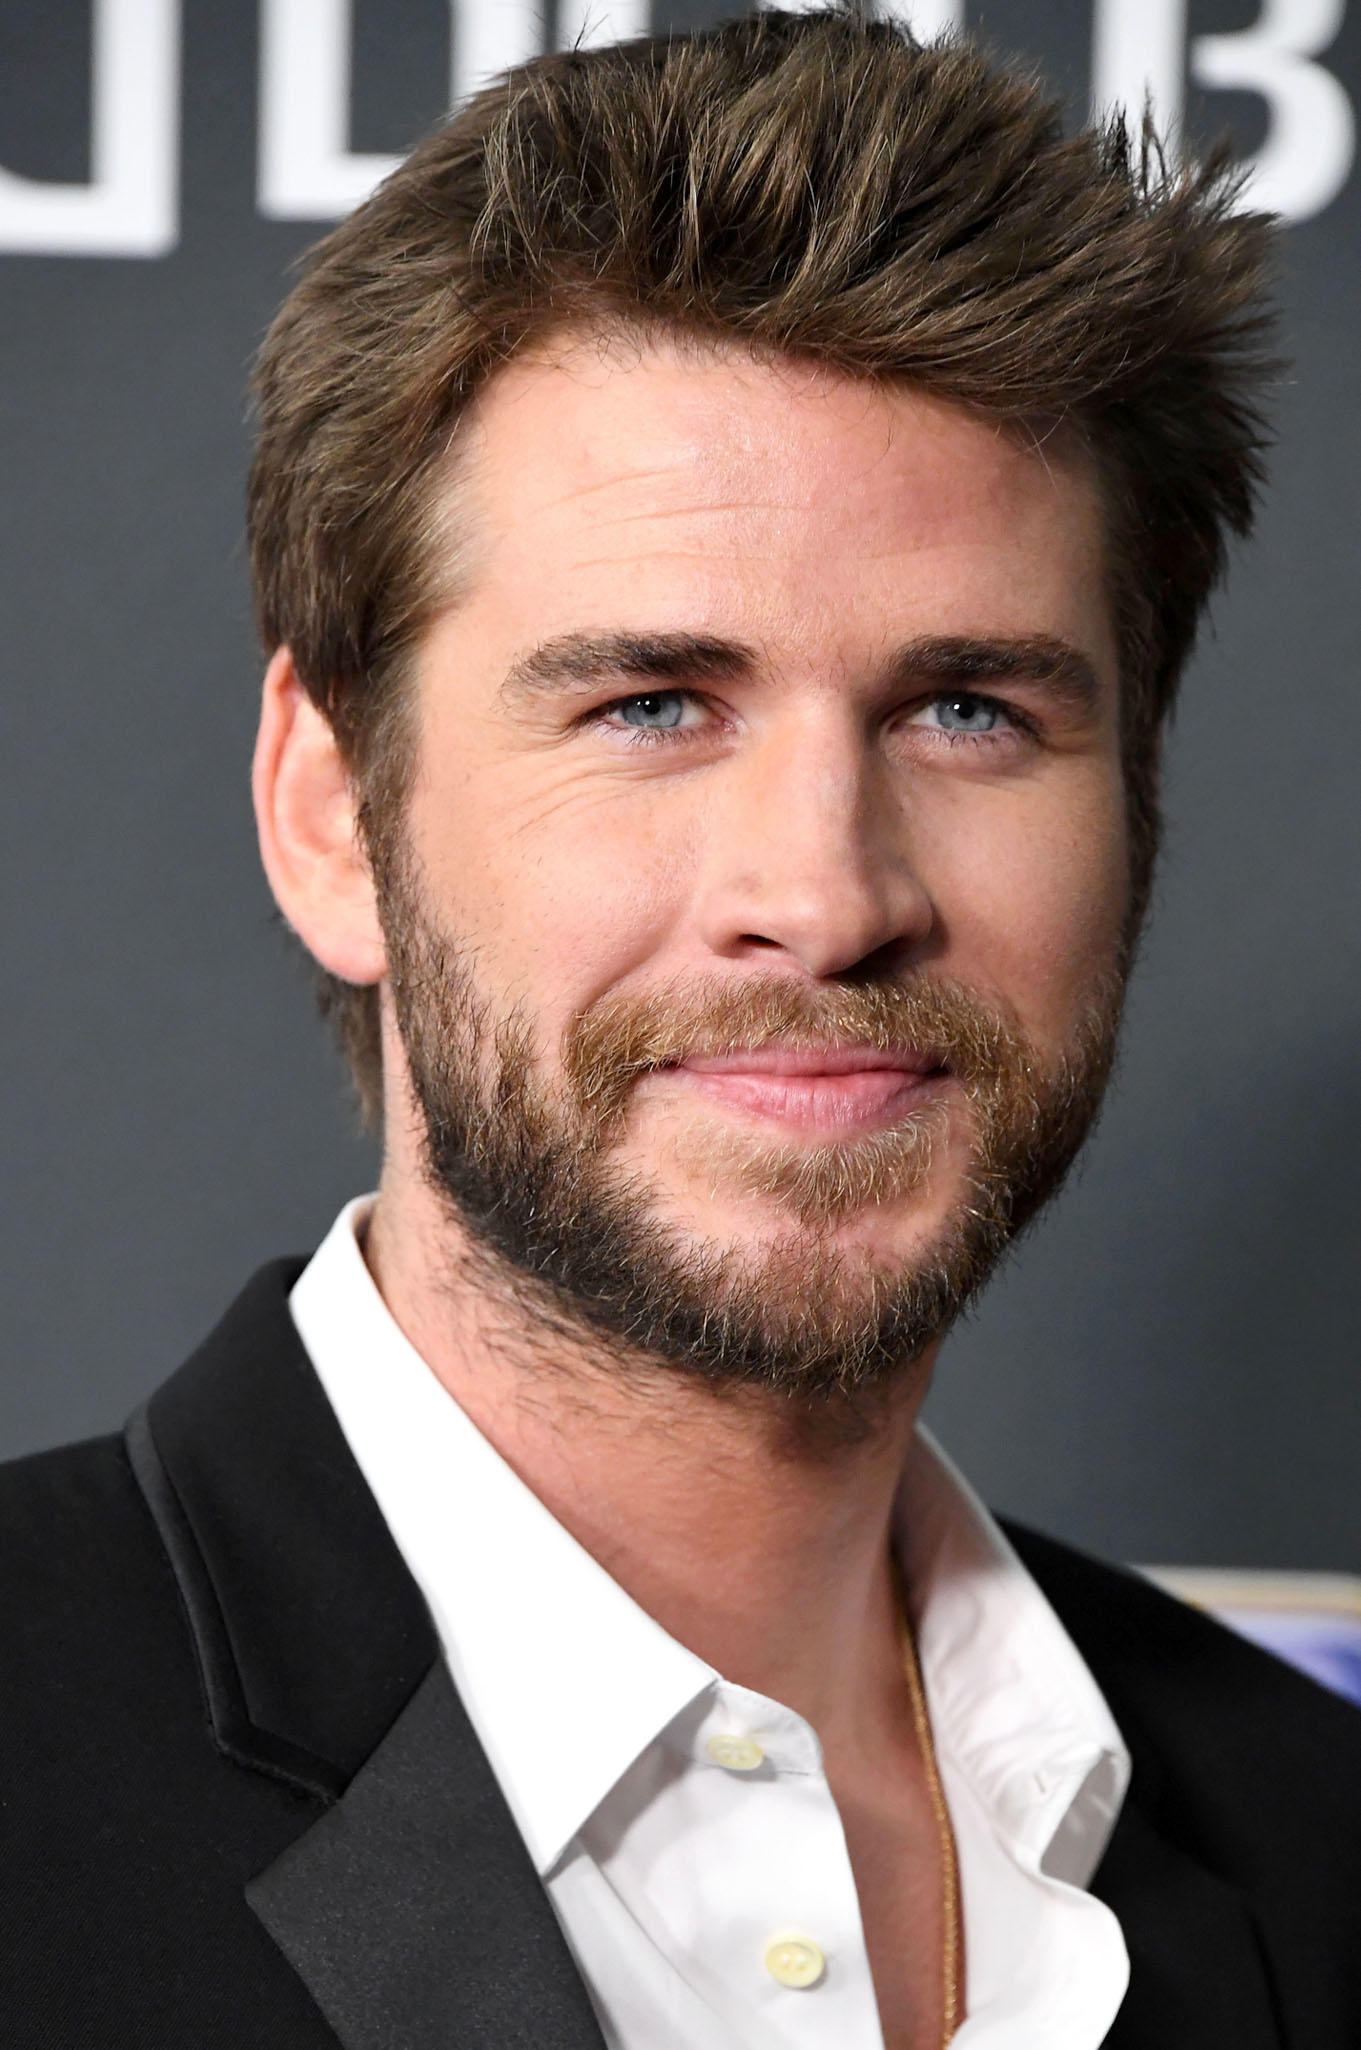 Liam Hemsworth at the world premiere of